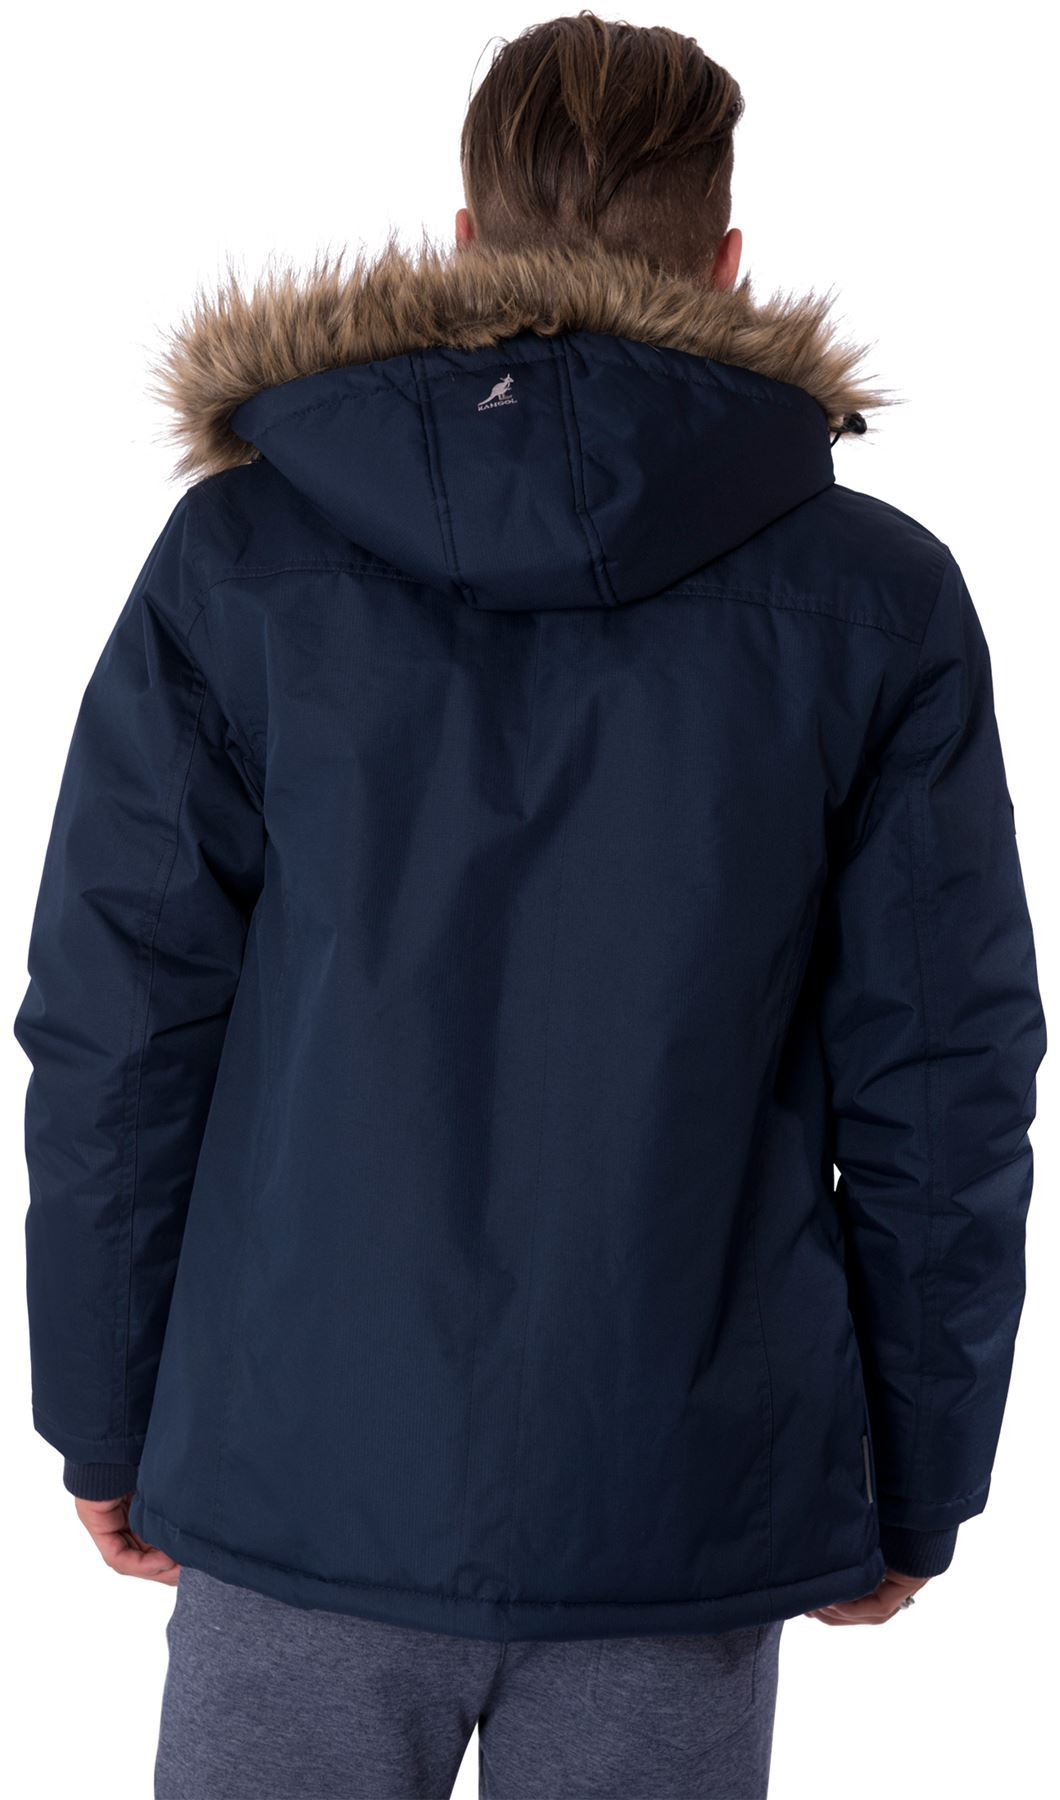 Find great deals on eBay for big mens winter coats. Shop with confidence.